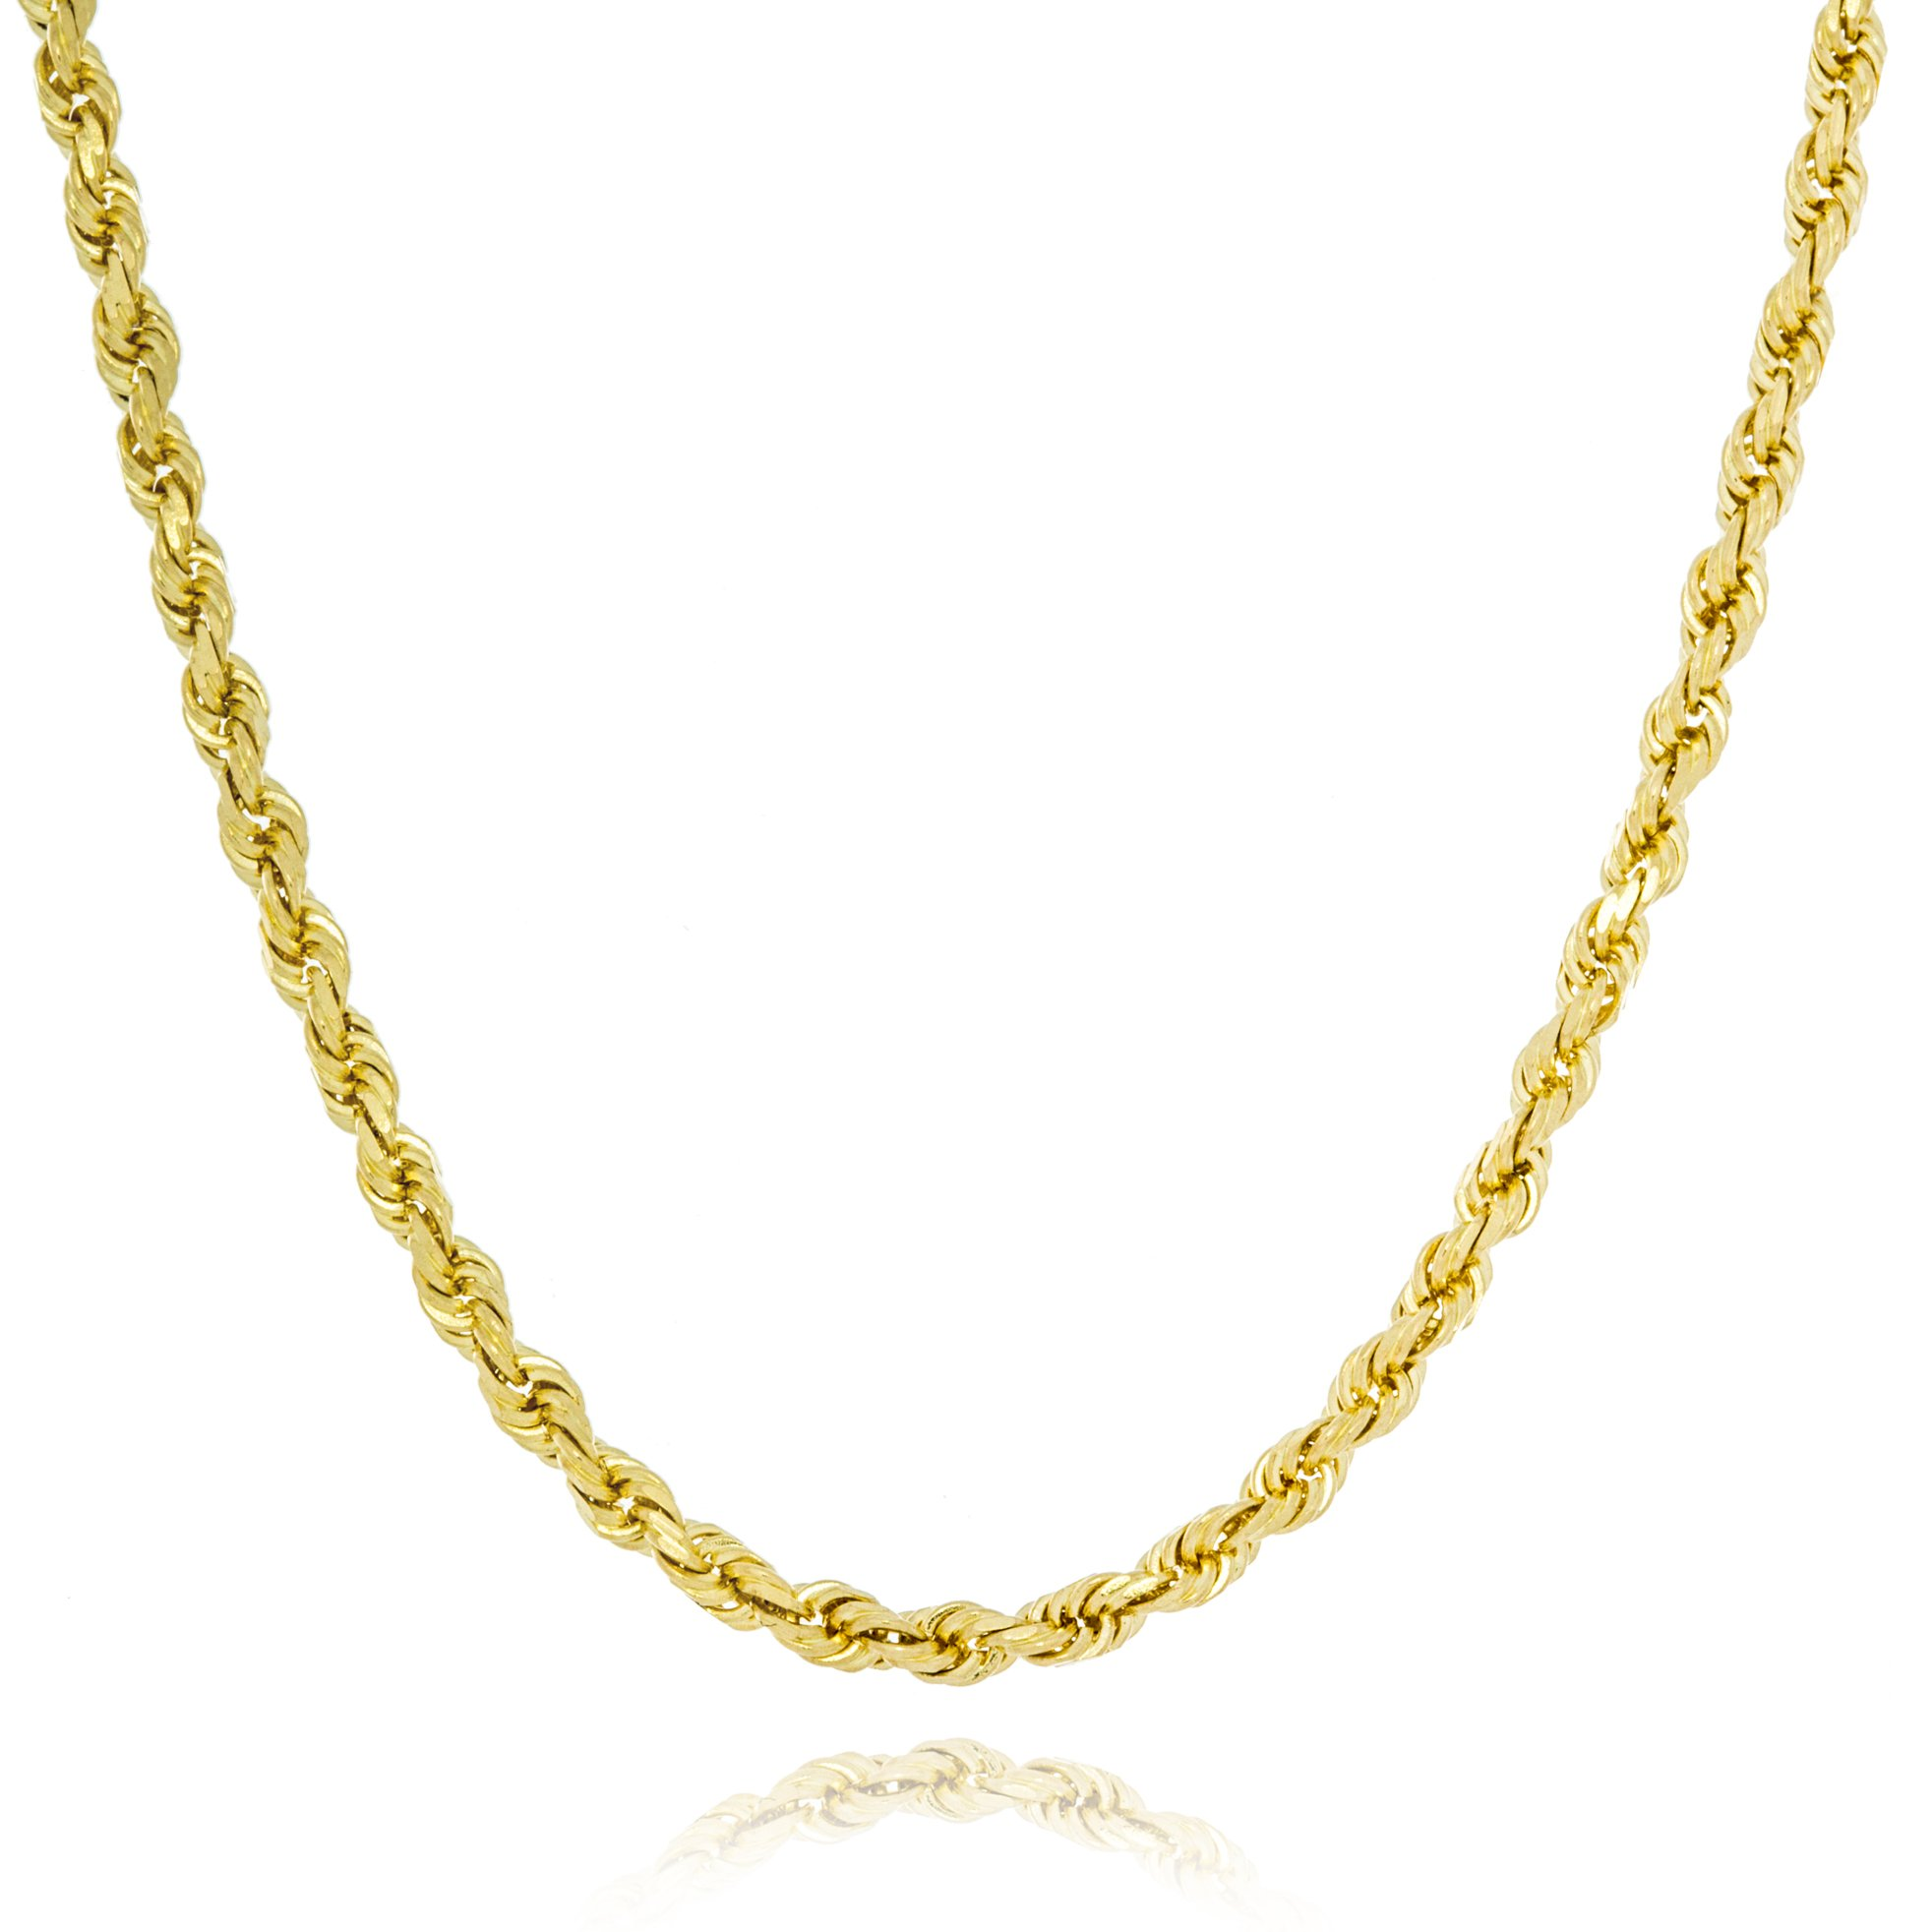 Solid Gold Heavy French Rope Chain Necklace Made in Italy of 14K Yellow Gold 2mm Wide by 18'' Long | 6.6g